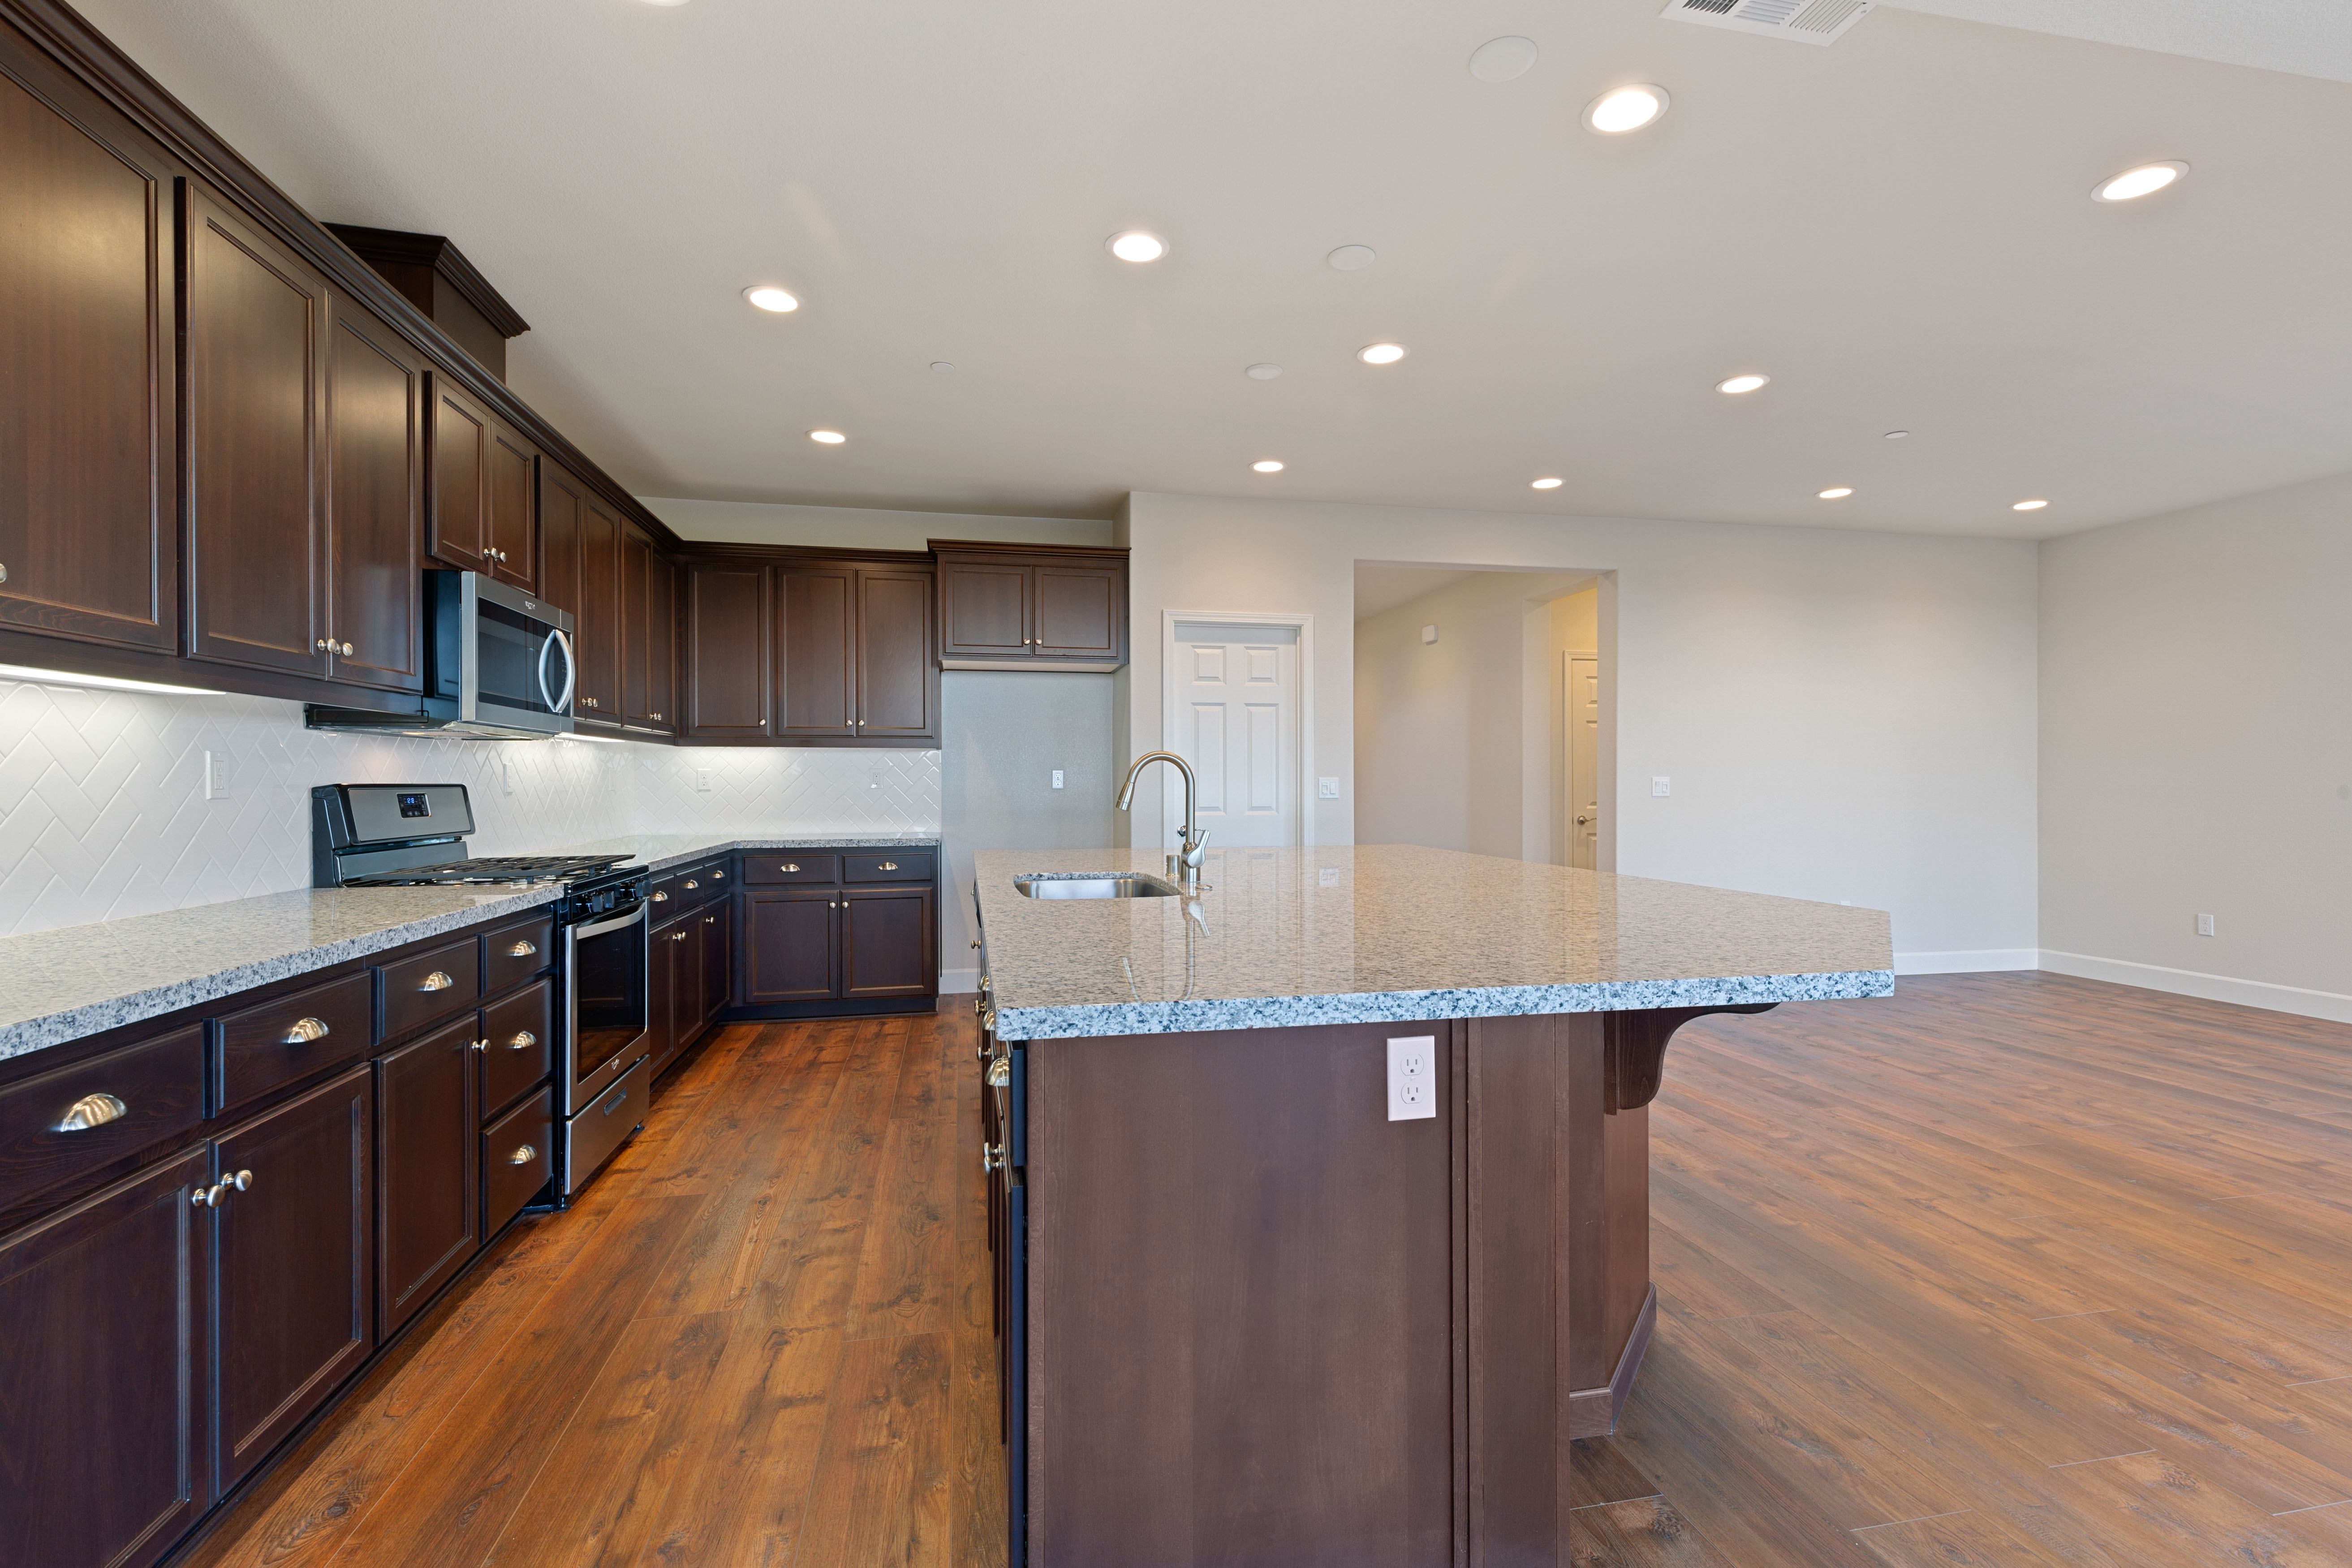 Countertop and cabinets   Elite Builder Services